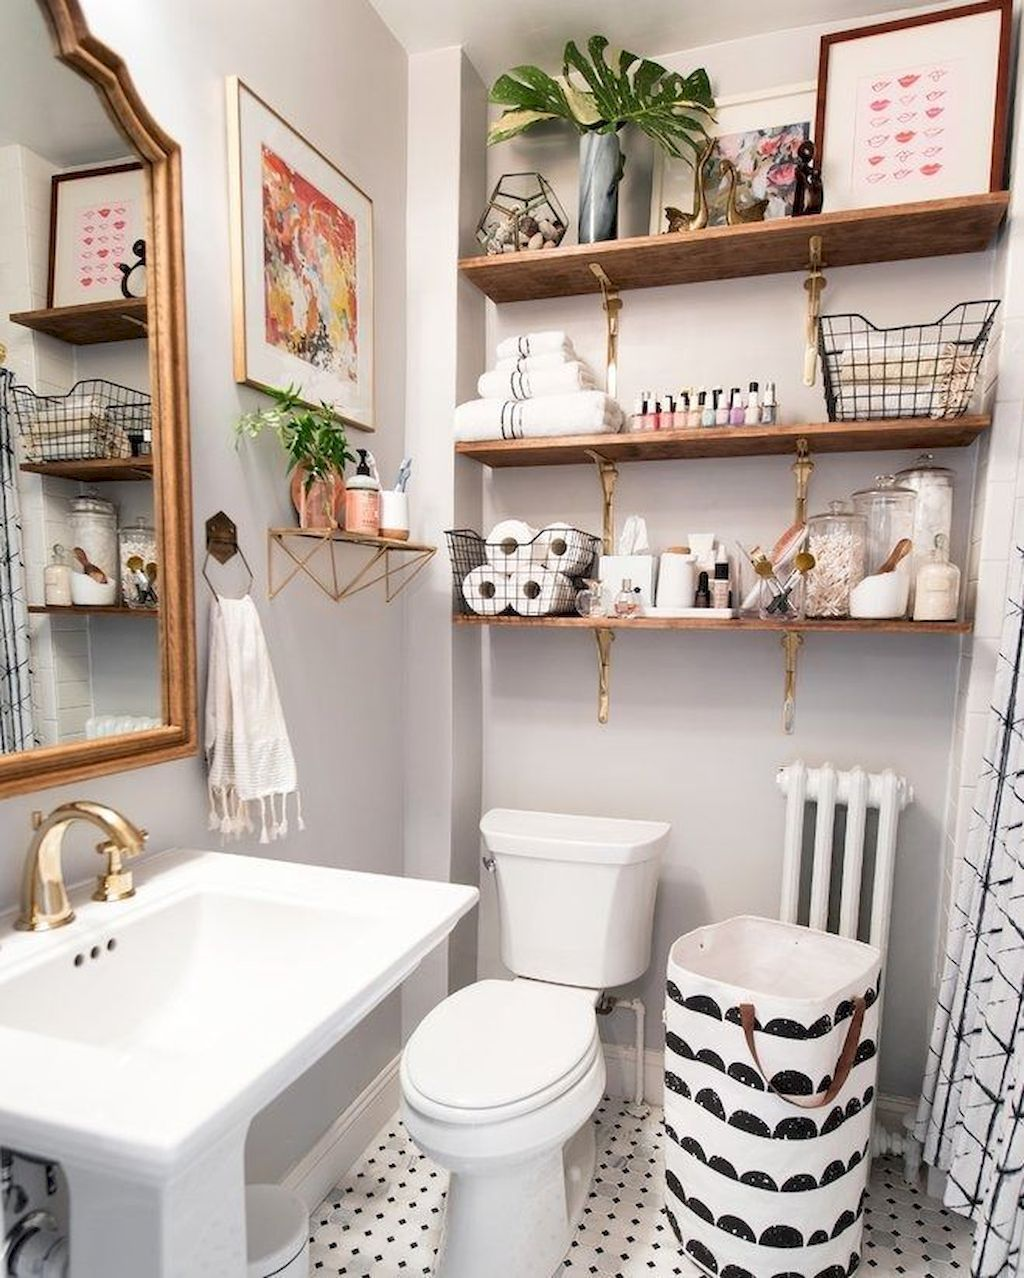 Small Bathroom Organization Ideas That Will Add More Spaces During